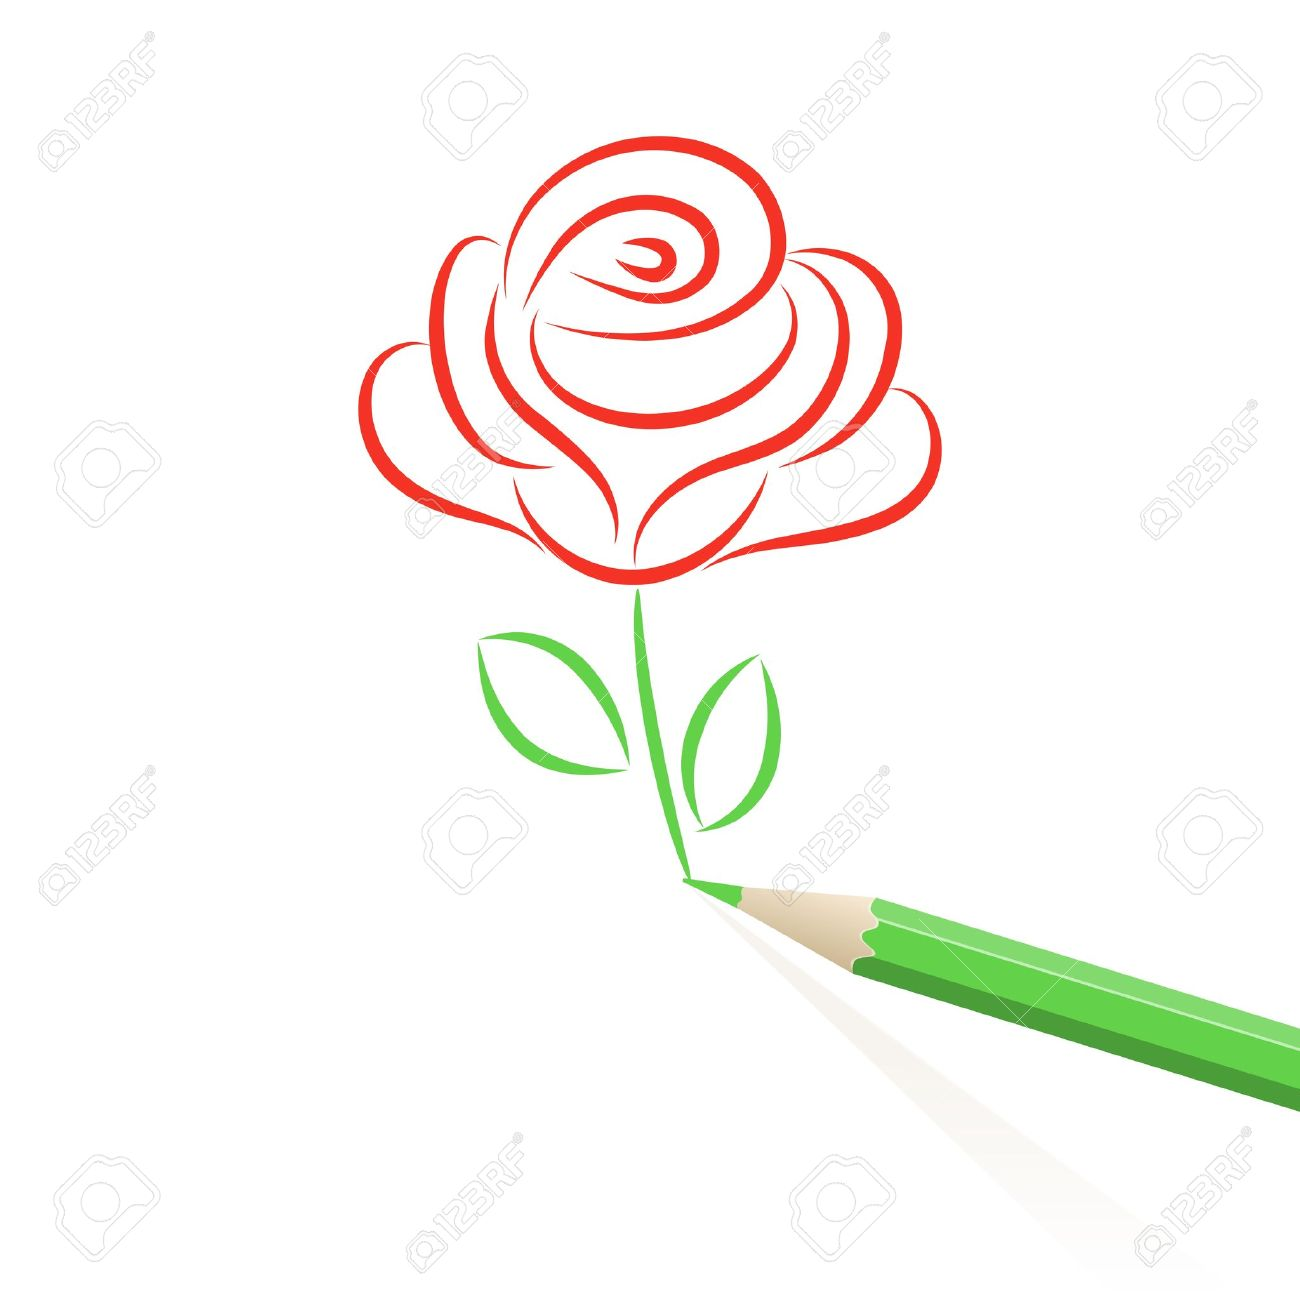 1300x1300 Rose Drawn In Pencil. Royalty Free Cliparts, Vectors, And Stock